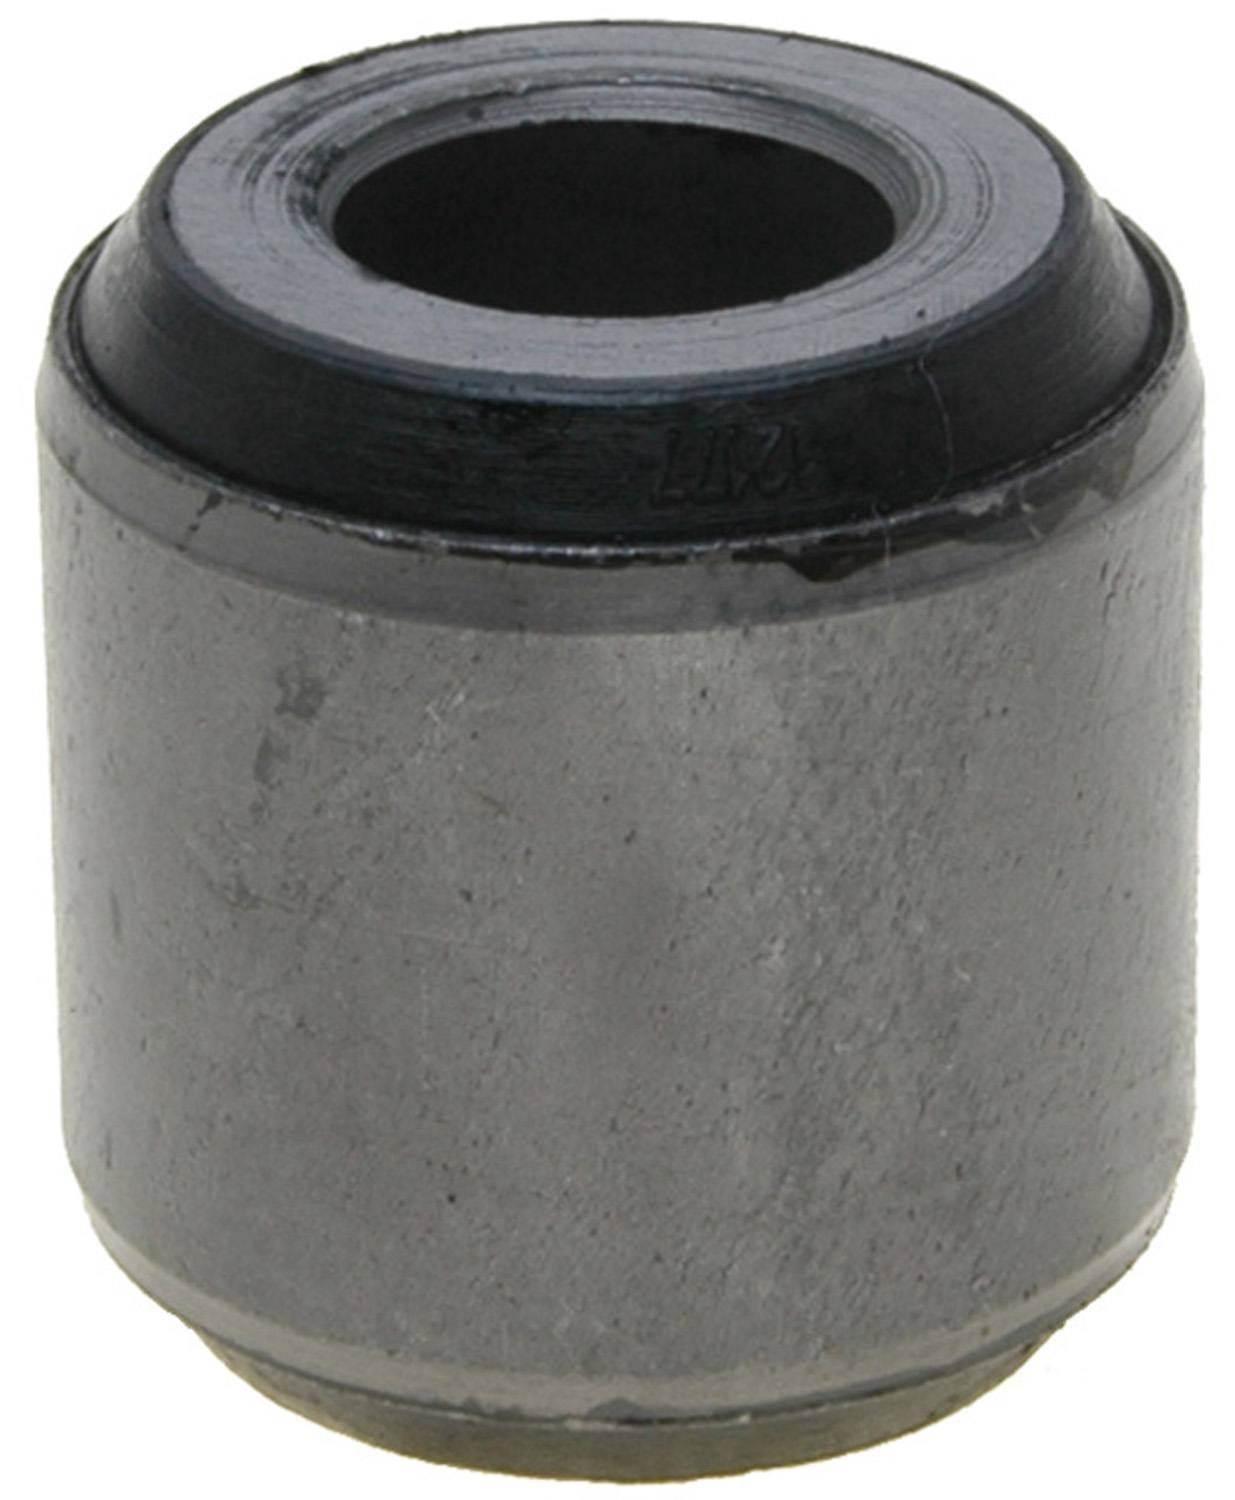 ACDELCO PROFESSIONAL - Suspension Track Bar Bushing - DCC 45G1099